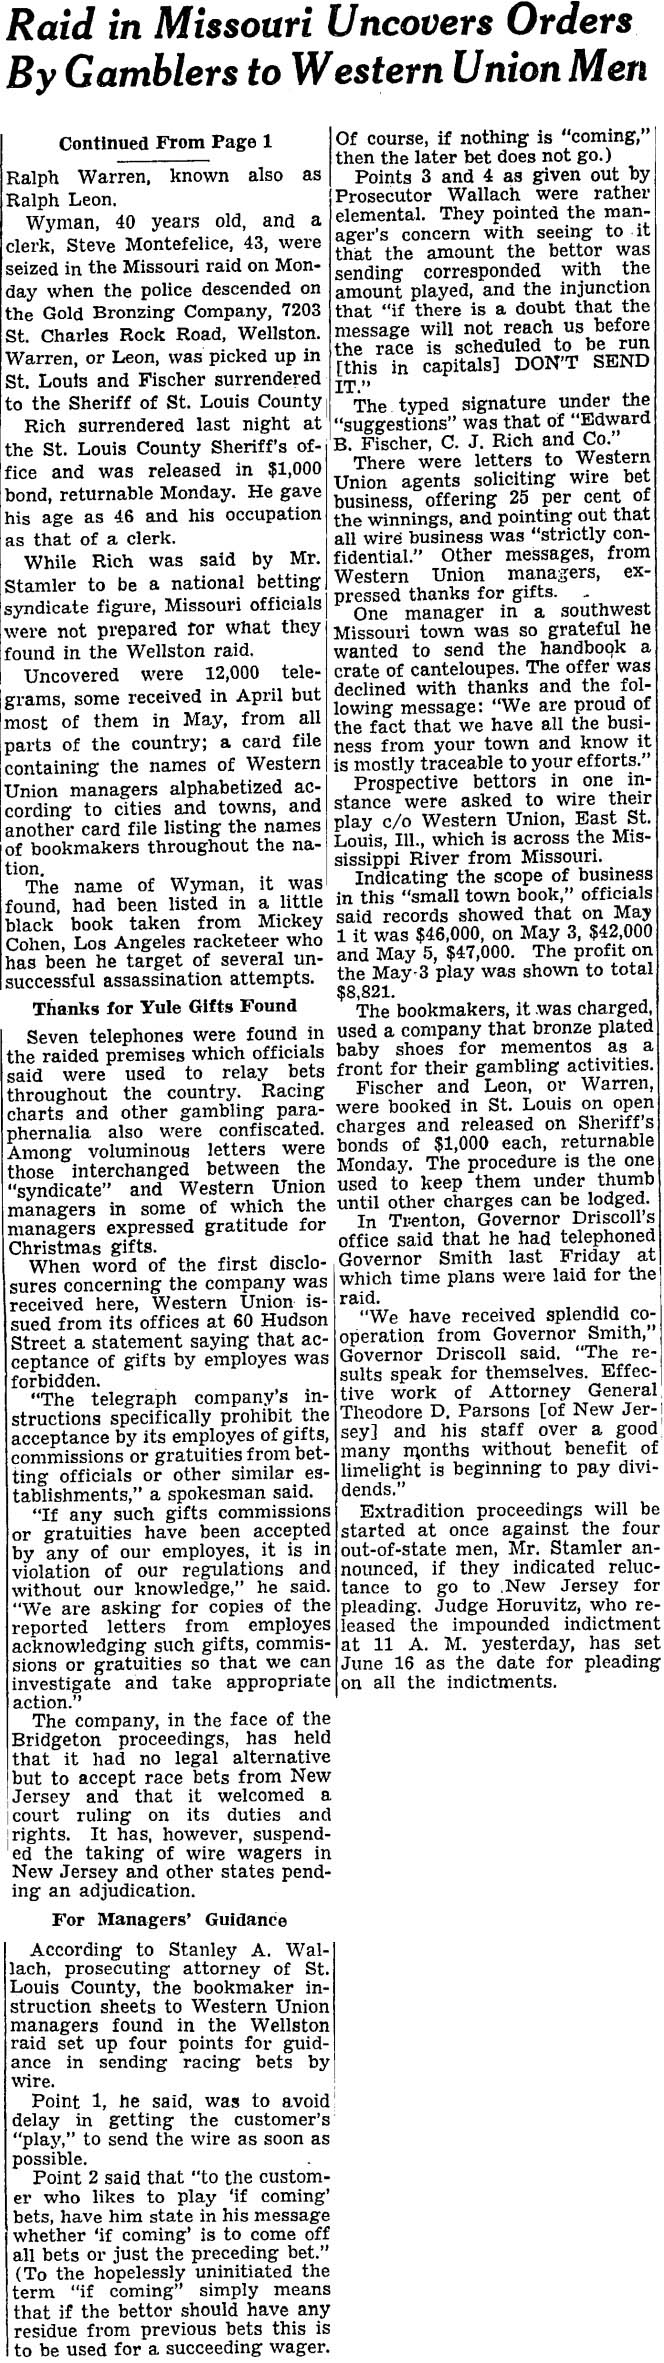 2WYMAN,NYTimes June 7, 1950